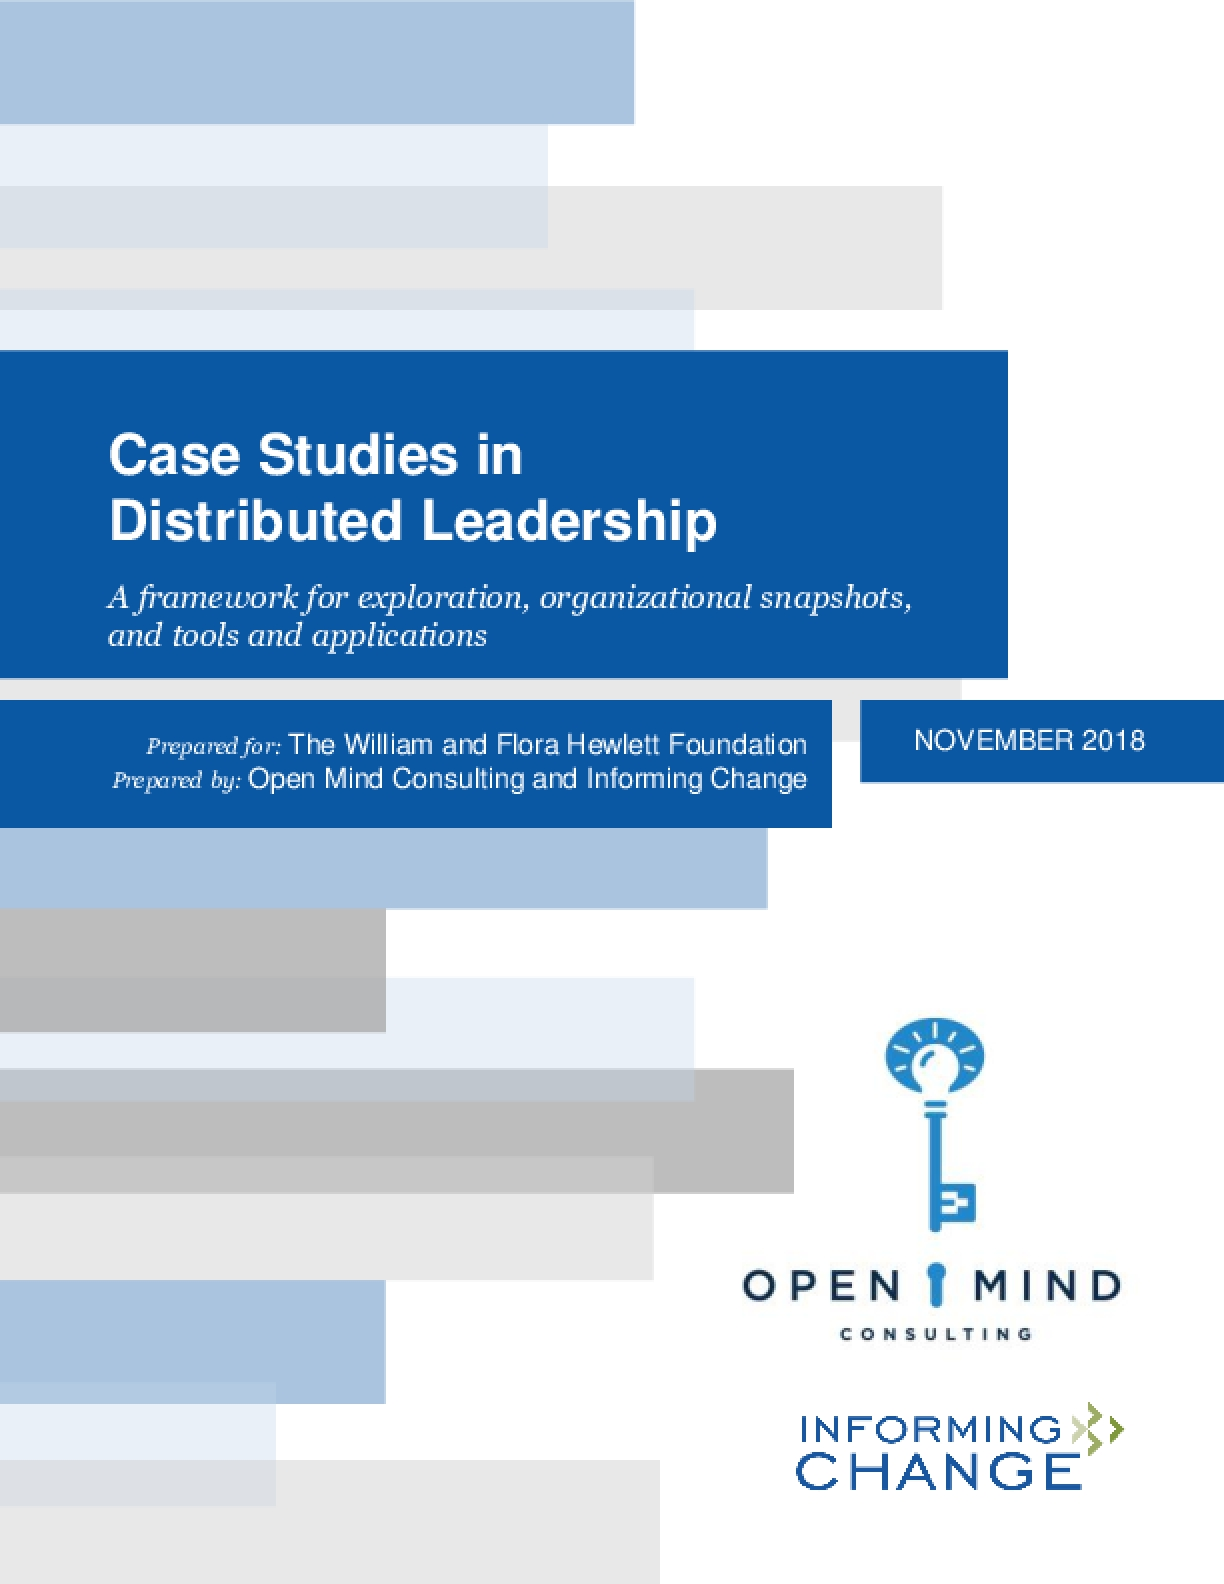 Case Studies in Distributed Leadership